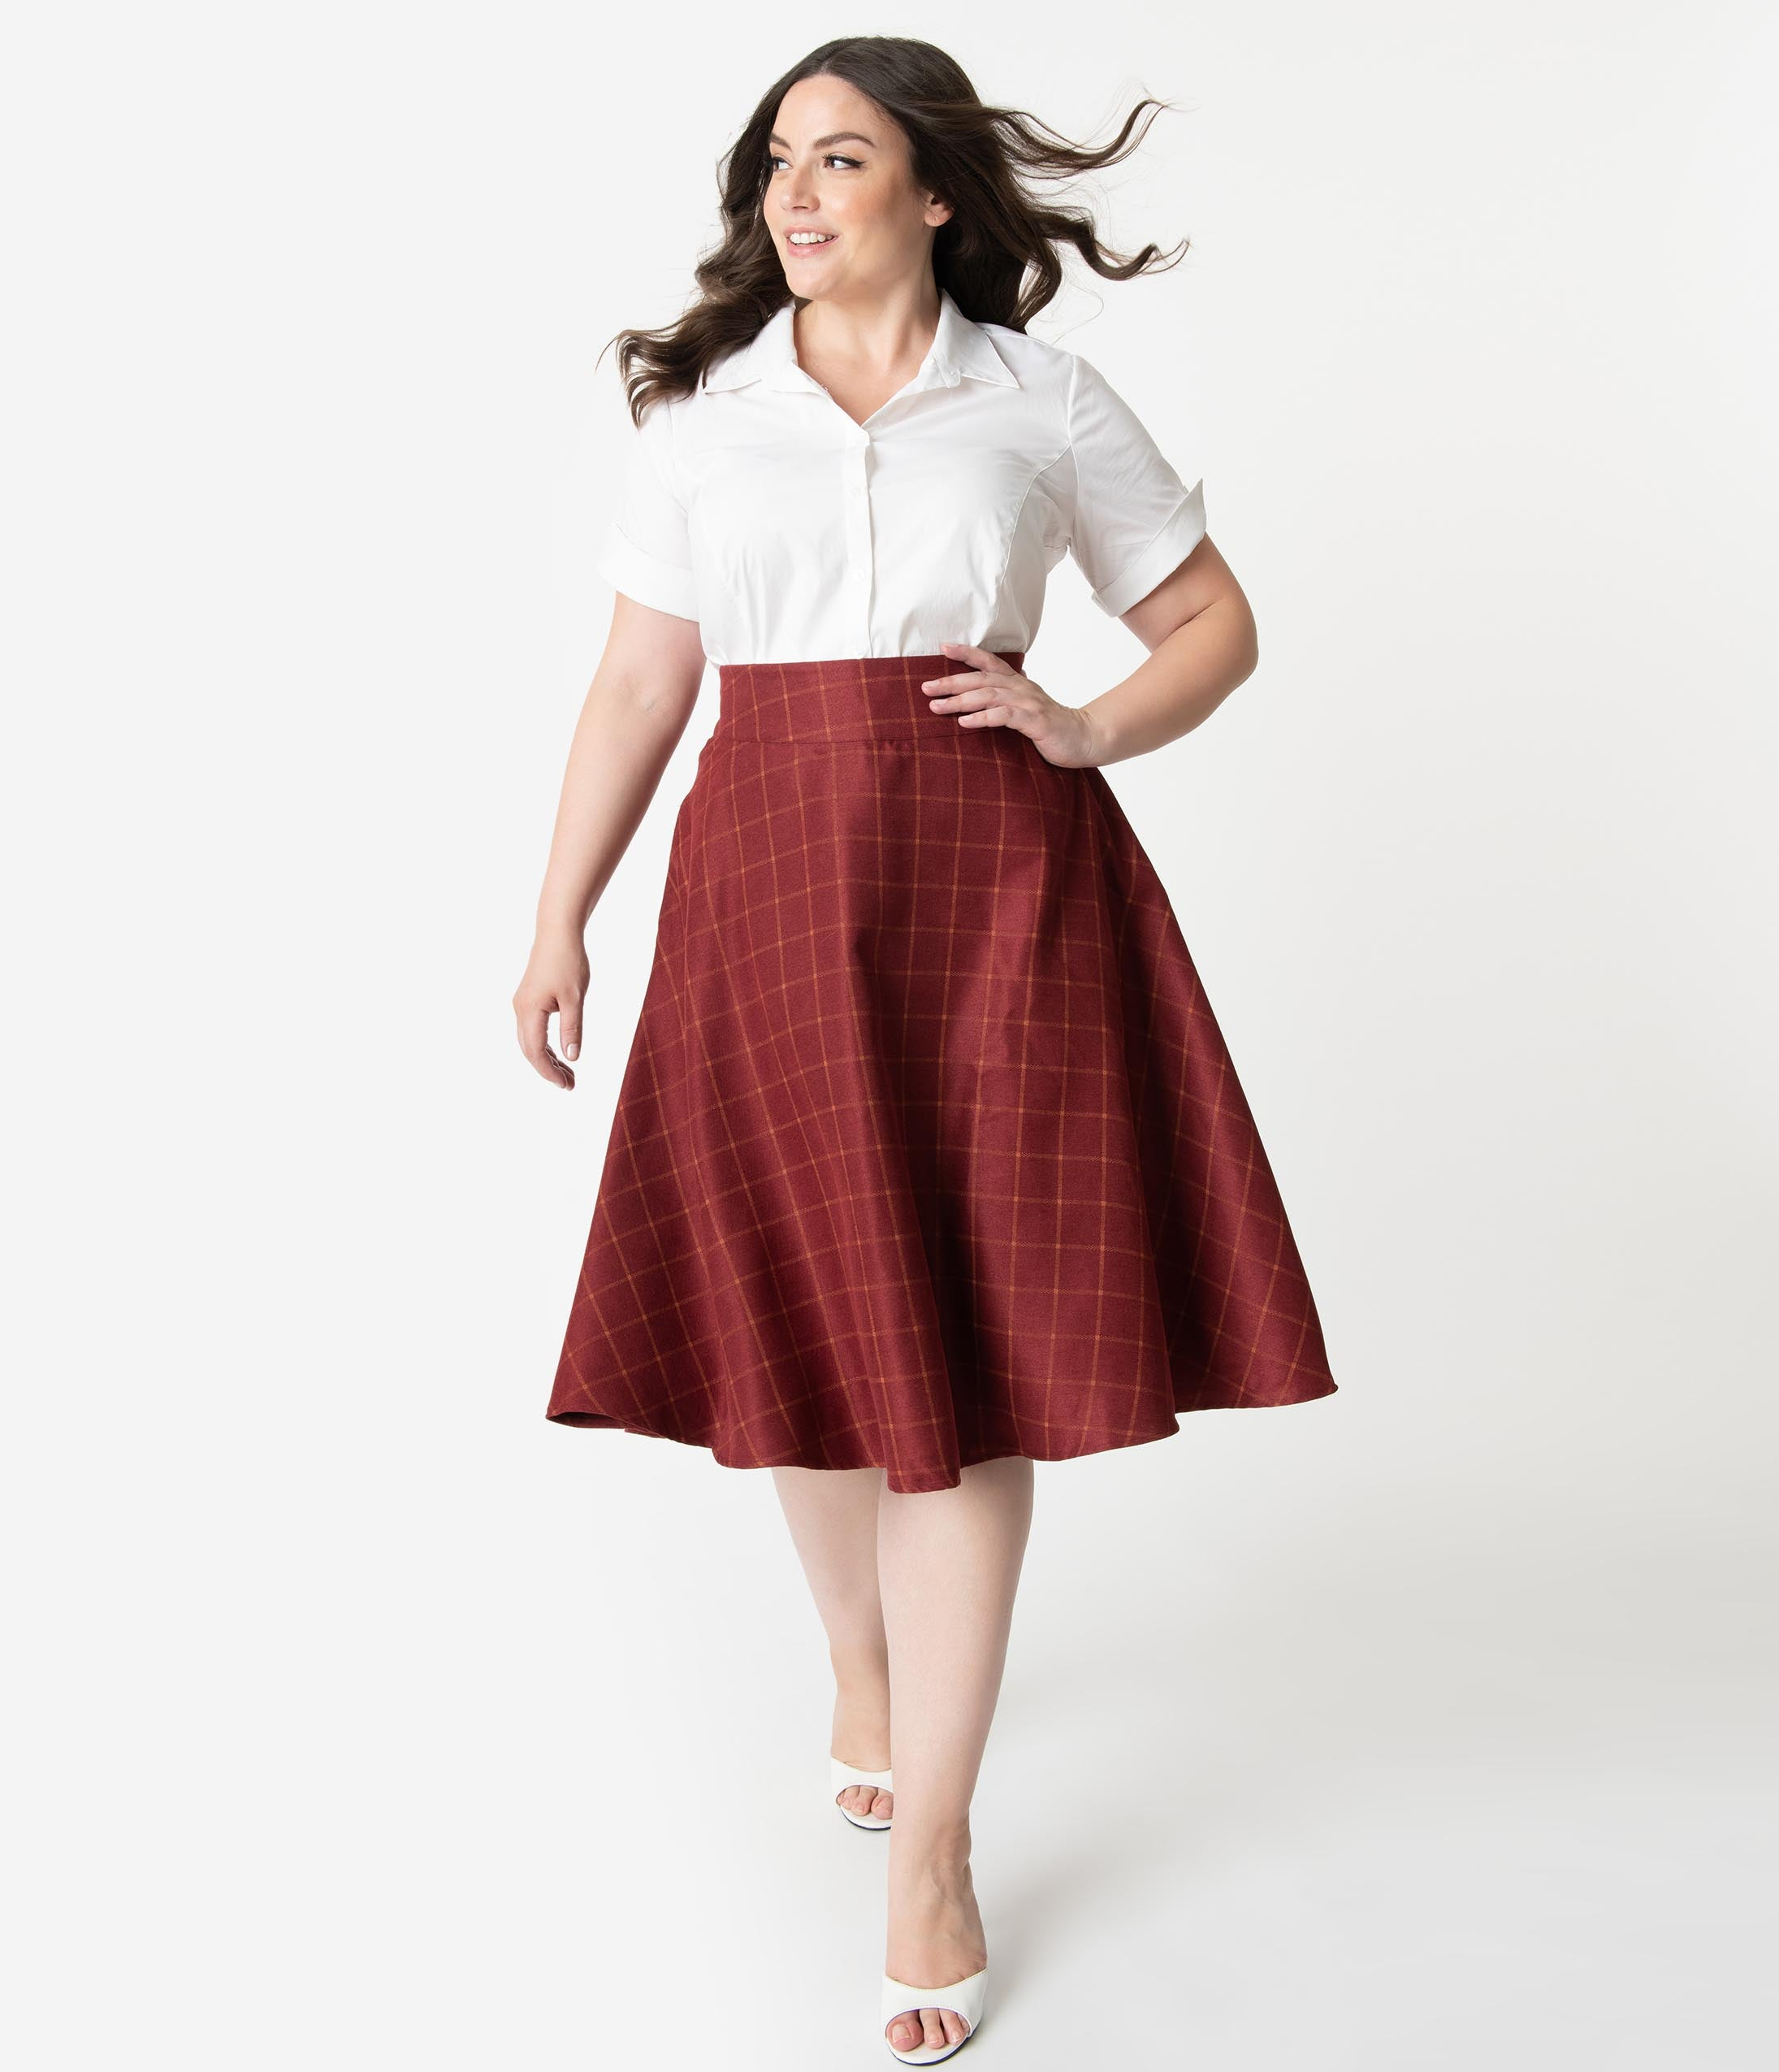 1940s Style Skirts- Vintage High Waisted Skirts Unique Vintage Plus Size Retro Style Burgundy Windowpane High Waist Vivien Swing Skirt $58.00 AT vintagedancer.com